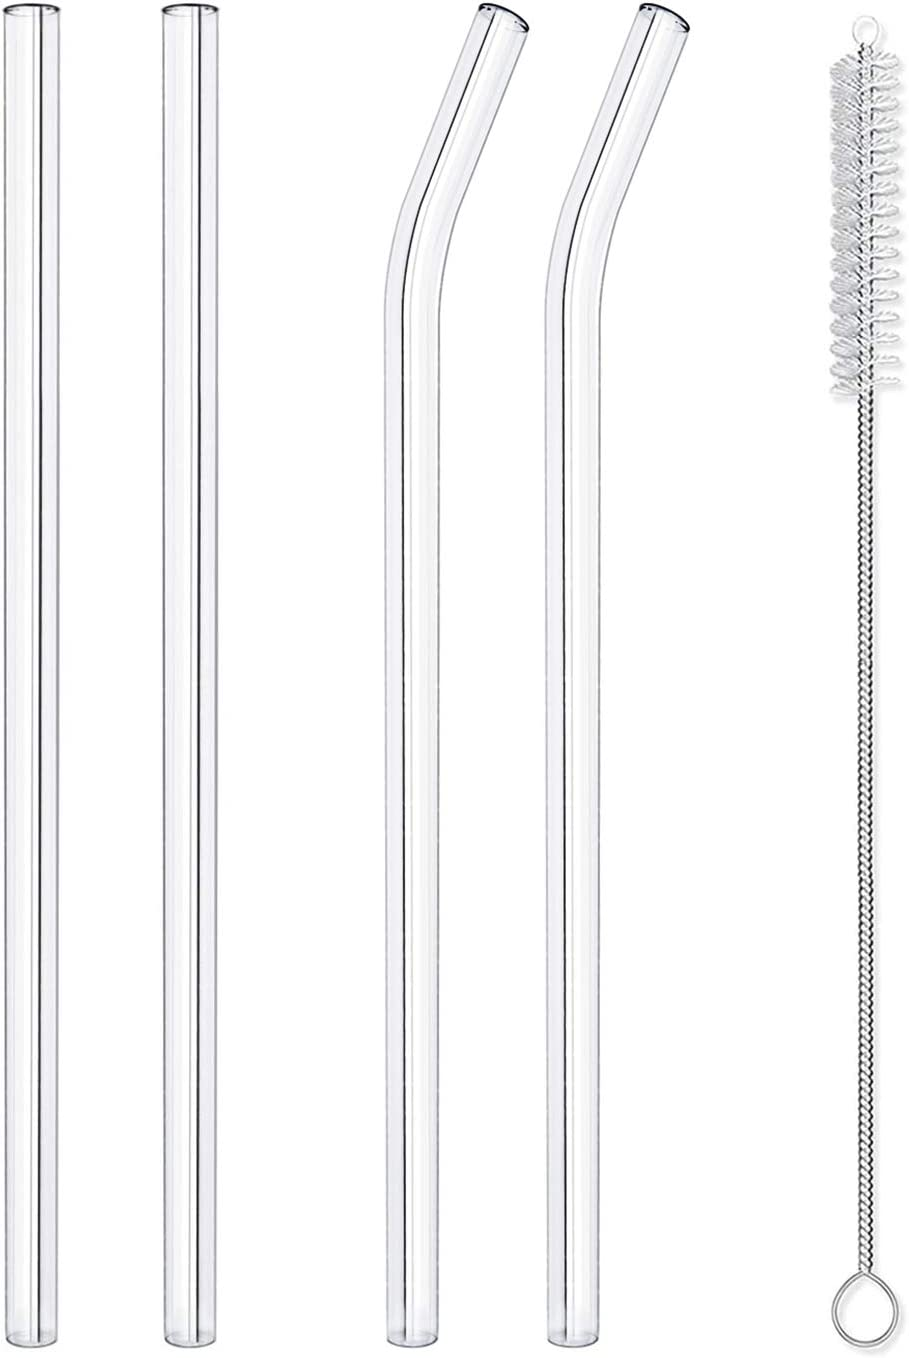 "Hiware Reusable Glass Straws Set, 4-piece Drinking Staws with Cleaning Brush, 10"" x 10 mm, Dishwasher Safe"